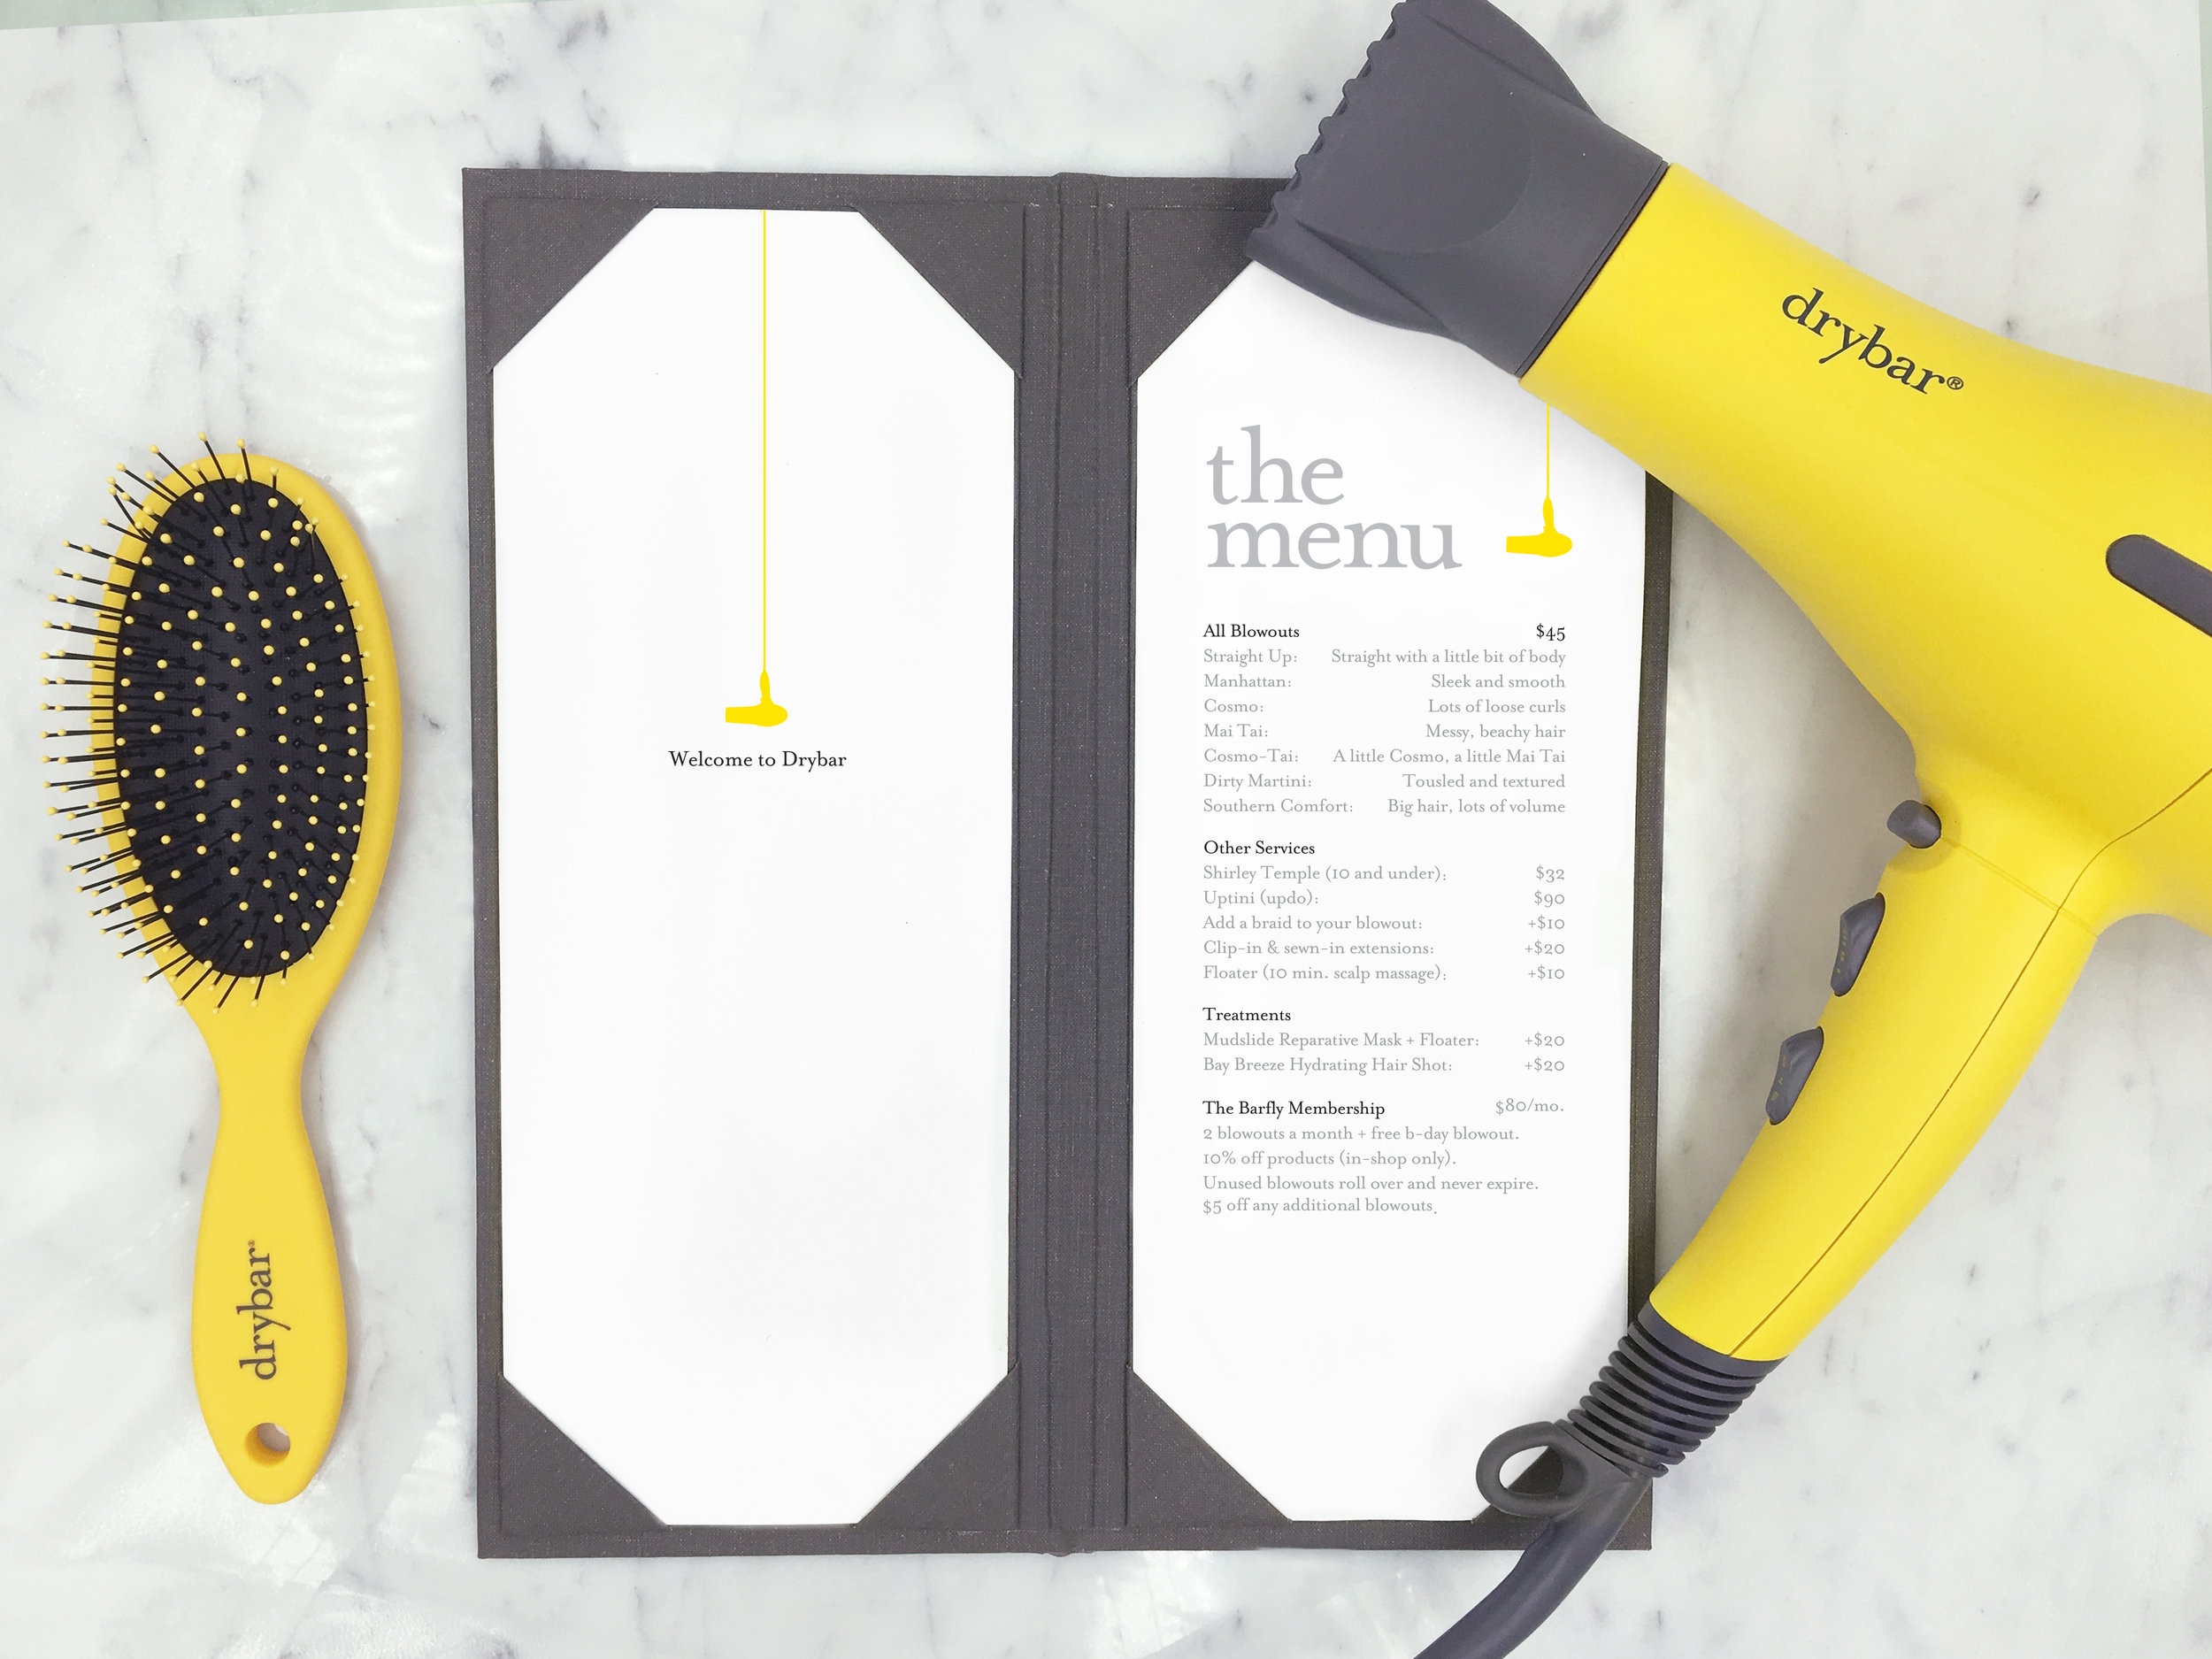 Appointments can be booked online at  www.thedrybar.com , through the Drybar iPhone app, or by calling  877-379-2279 .